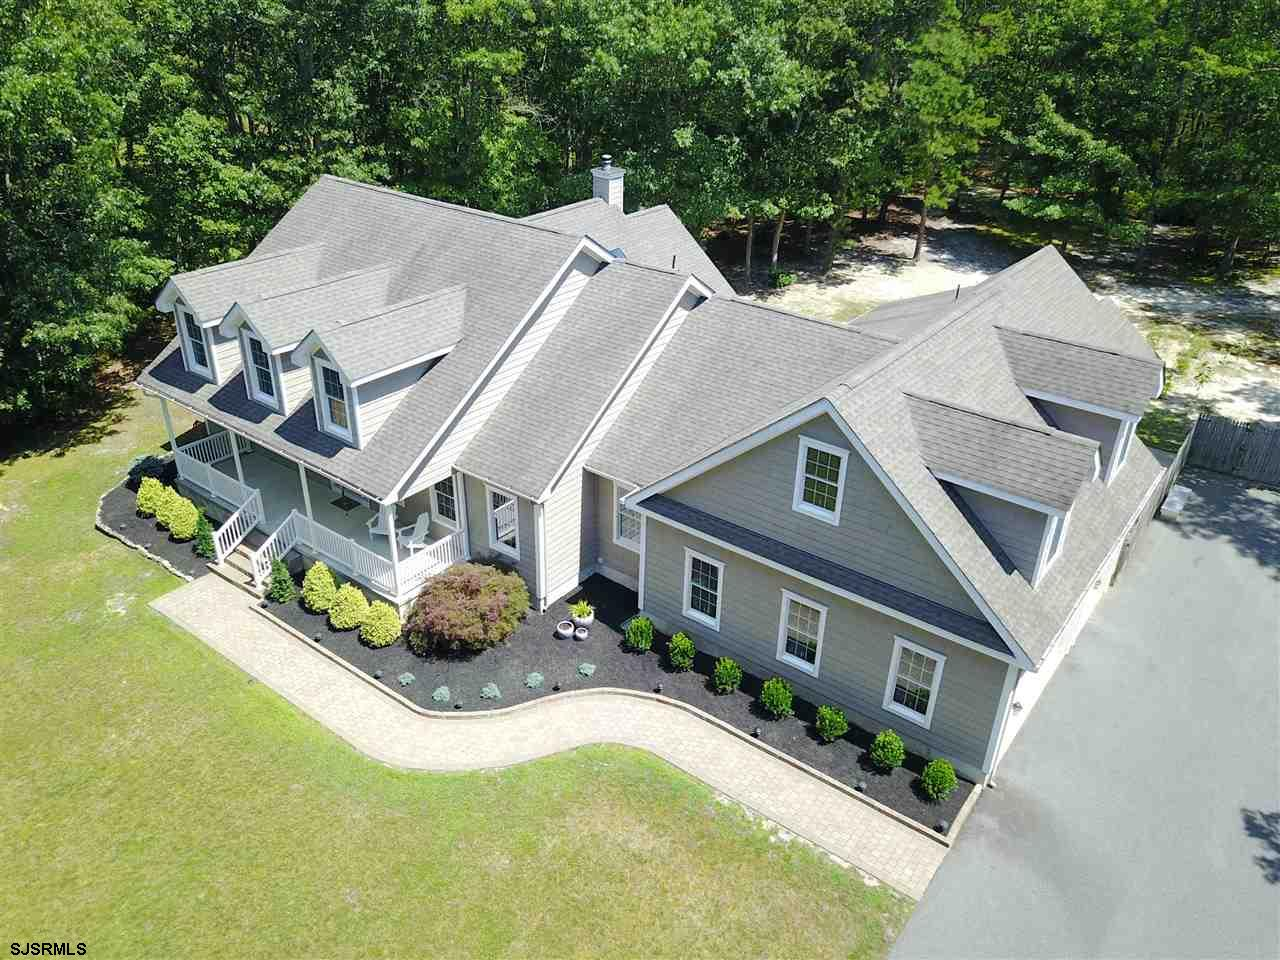 238 N Cologne Ave, Galloway Township, NJ 08215